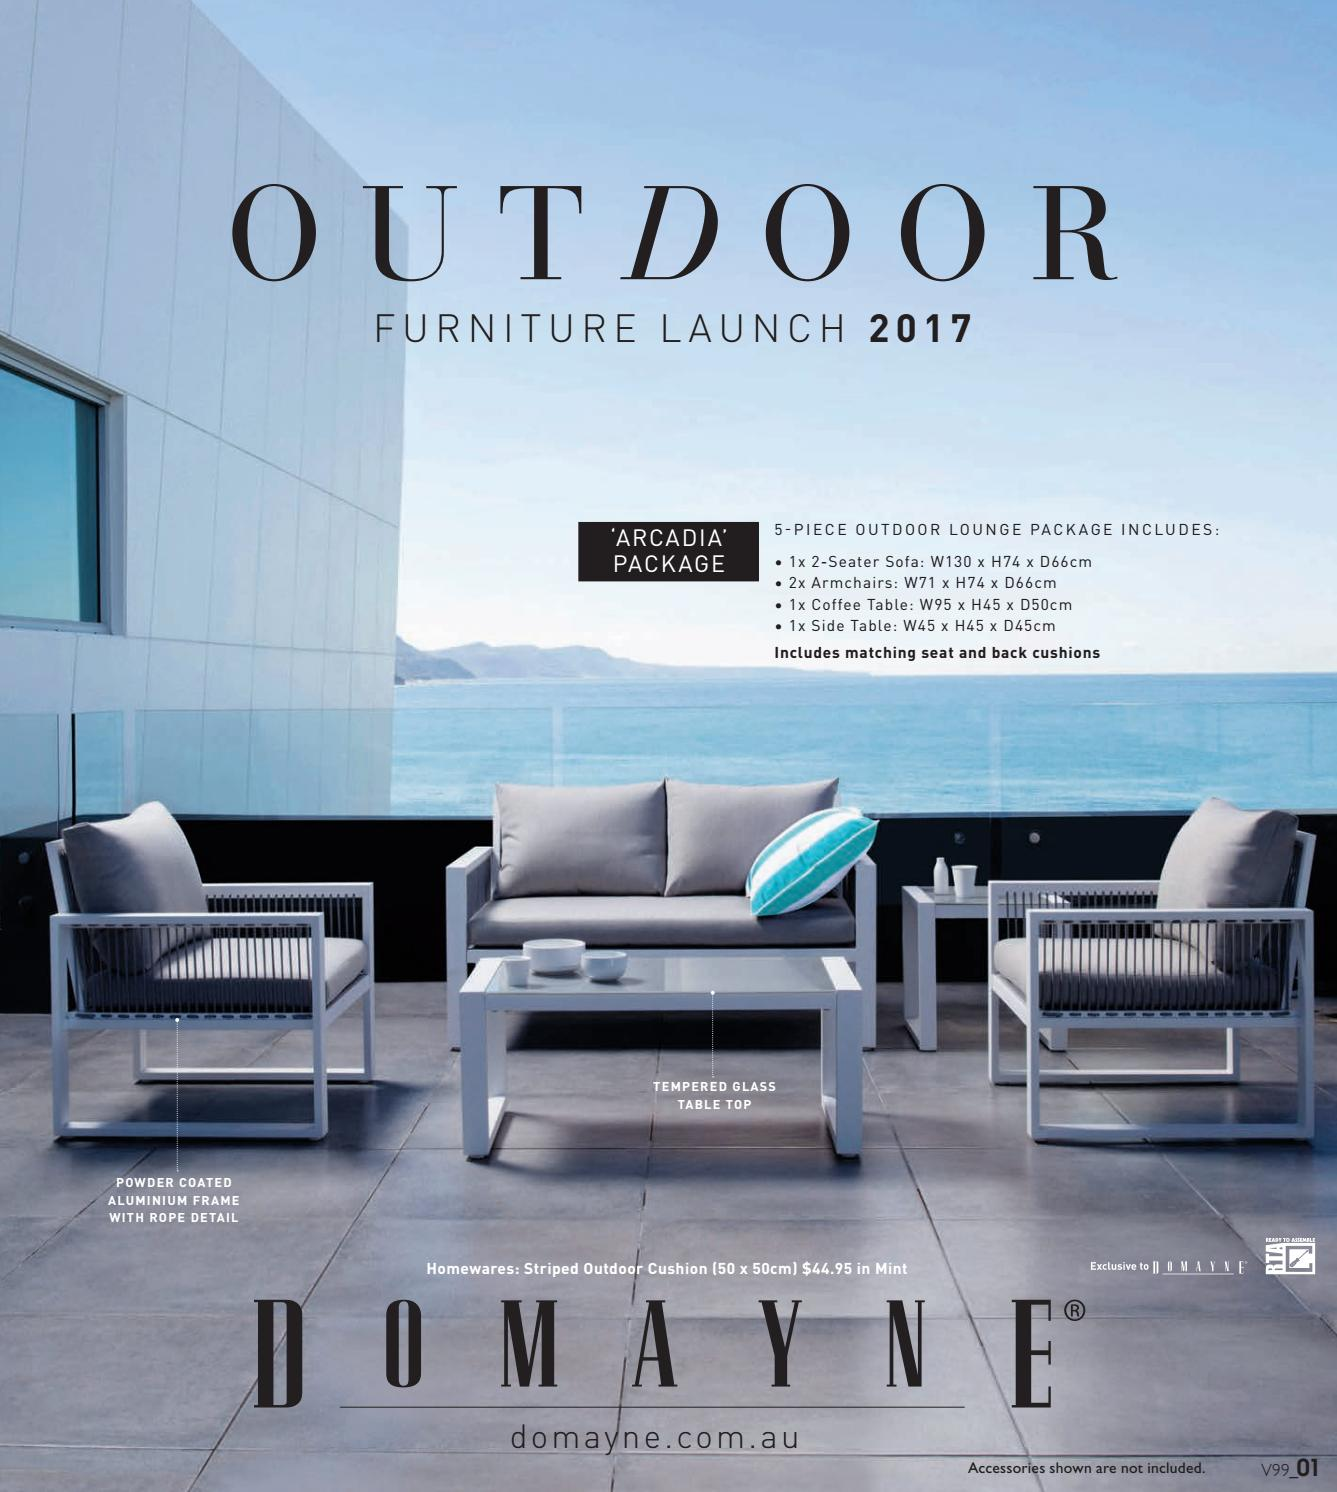 Outdoor furniture launch 2017